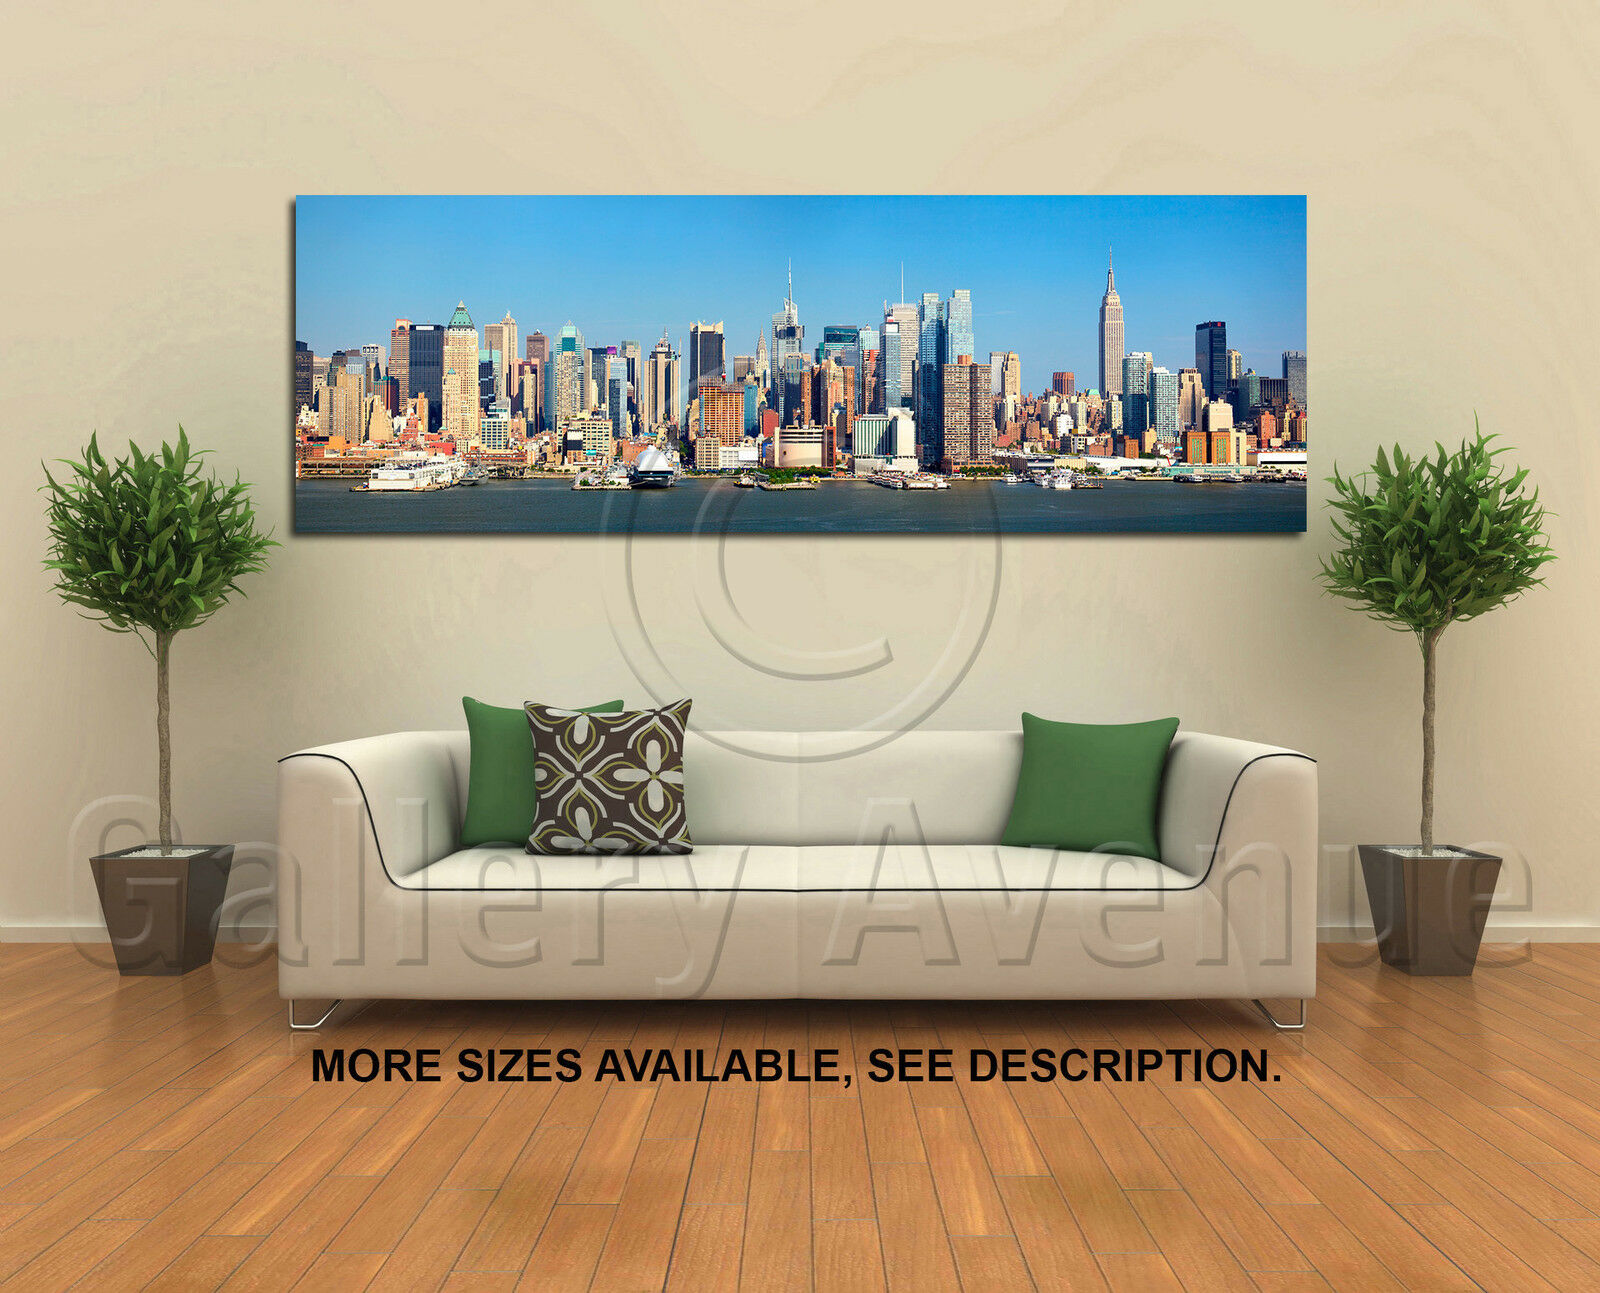 wand kunst Canvas Picture drucken - New York Skyline 1, 3.1